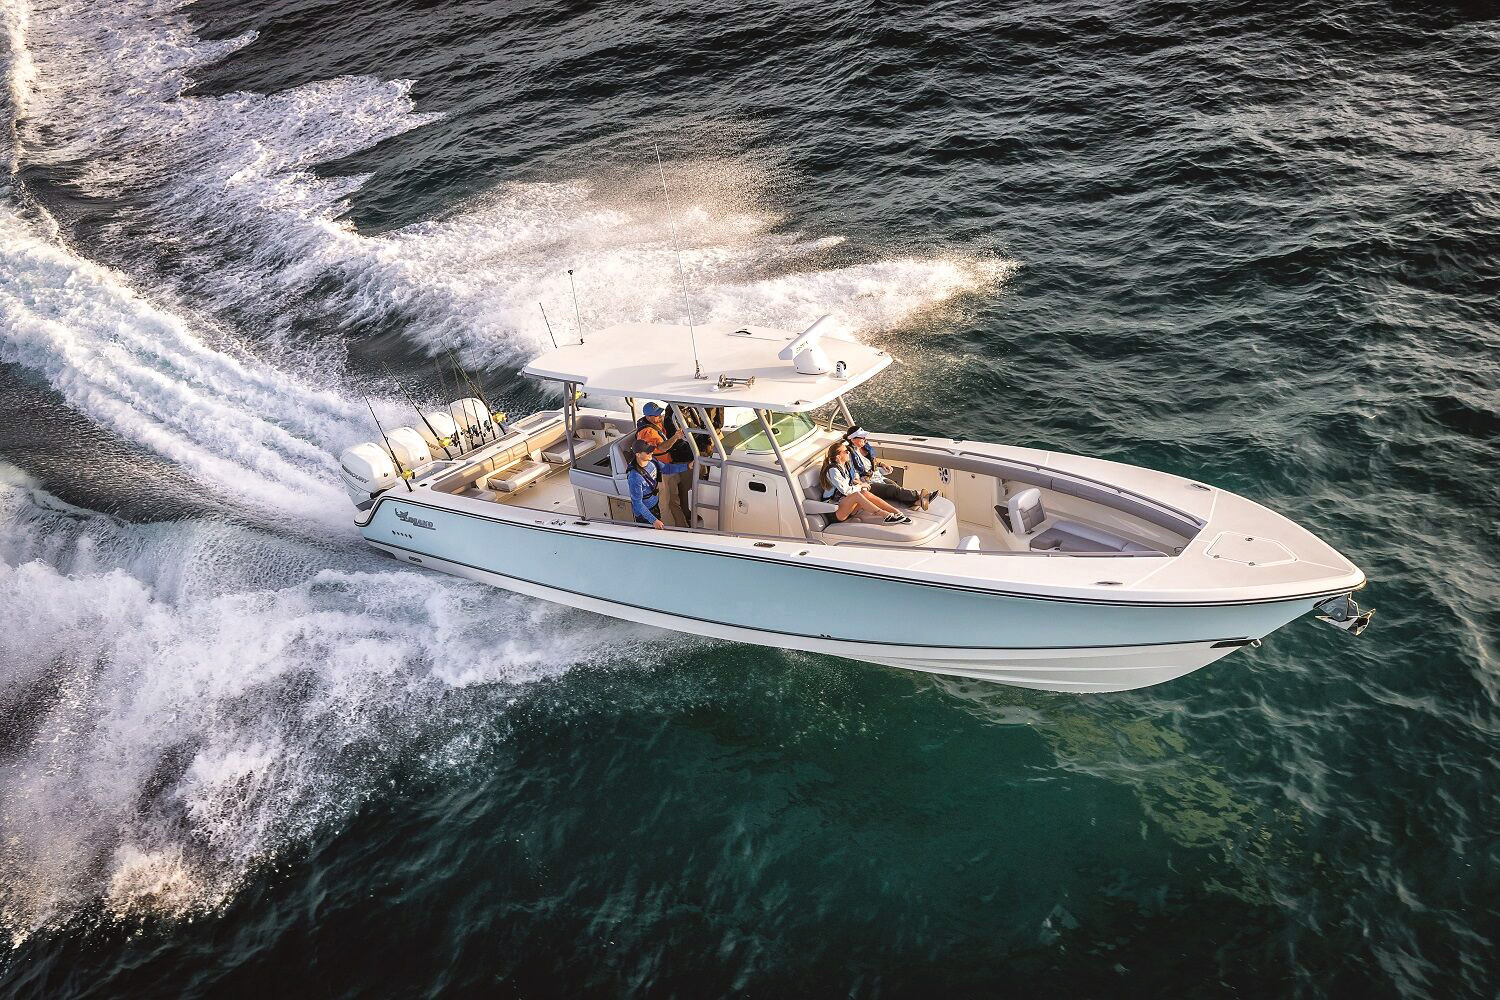 2018 1 Buyers Guide Mako 414 CC Starboard View Preview